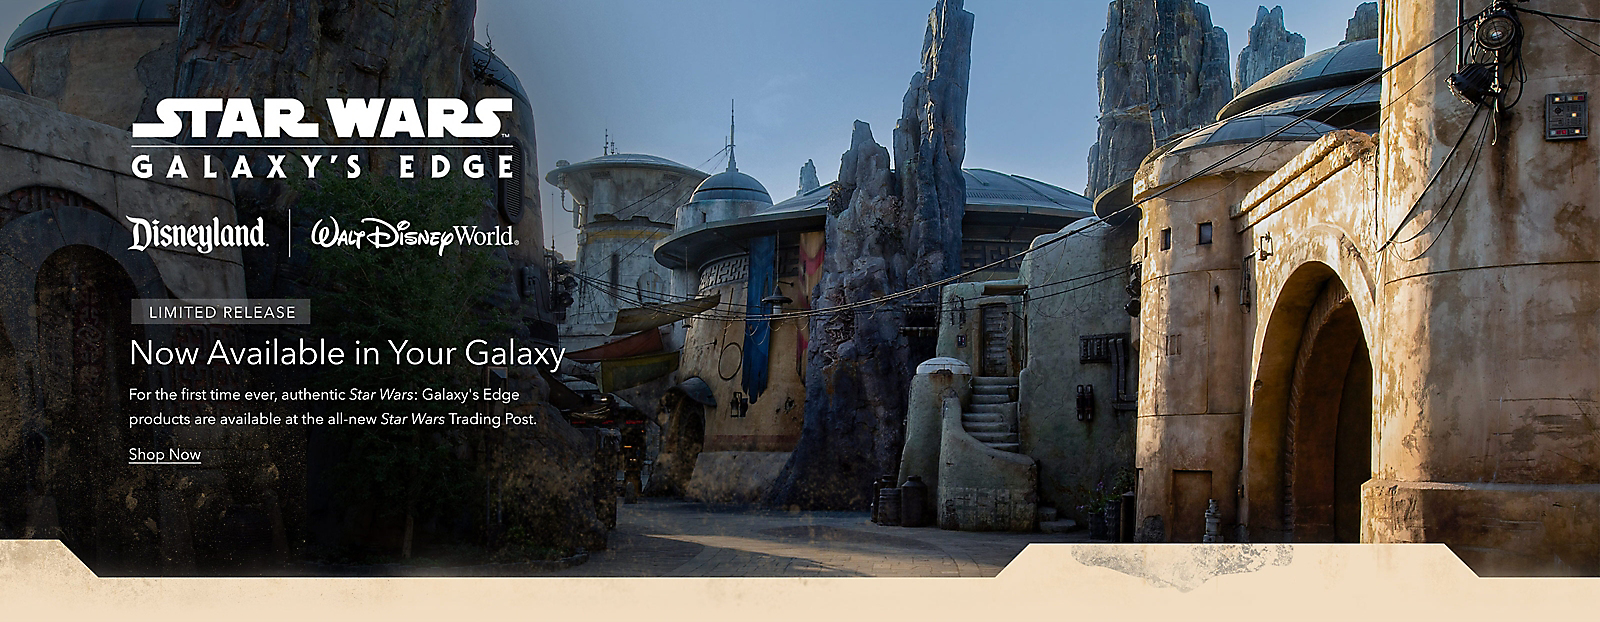 - Now Available in Your GalaxyFor the first time ever, authentic <i>Star Wars: Galaxy's Edge</i> products are available at the all-new <i>Star Wars</i> Trading Post.